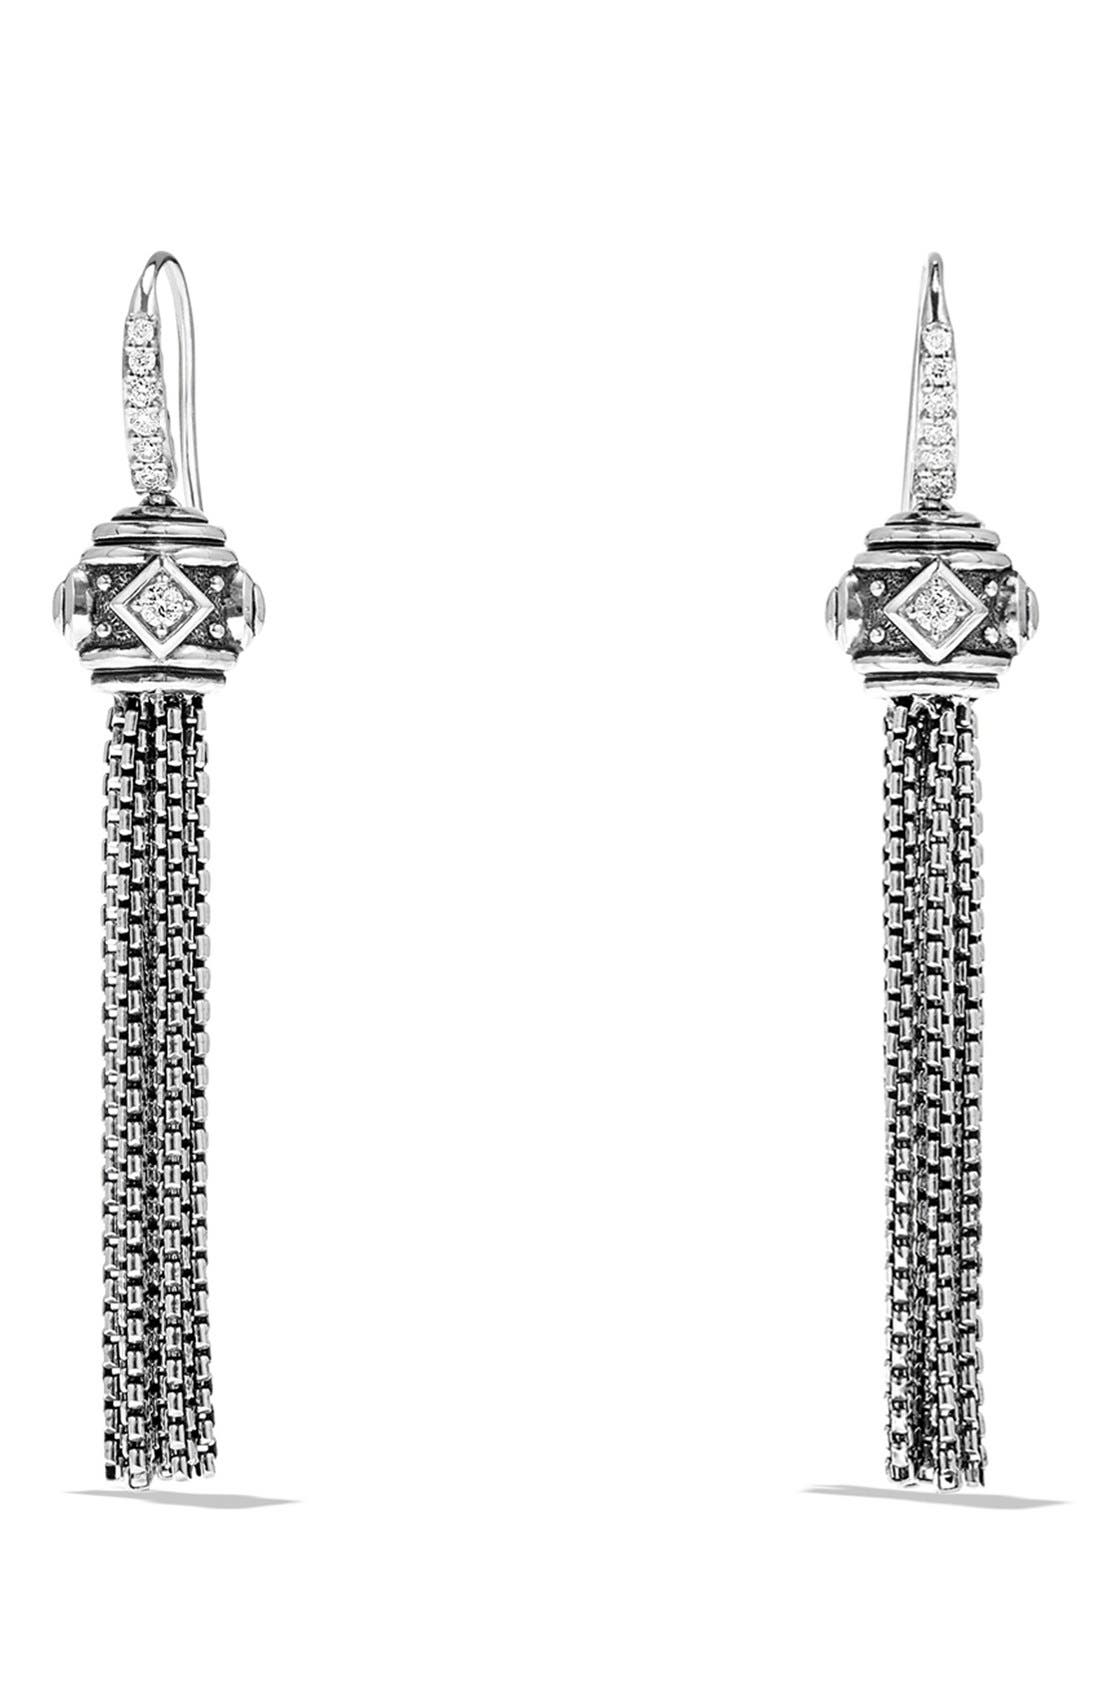 'Renaissance' Tassel Earrings with Diamonds in Silver,                         Main,                         color, Diamond